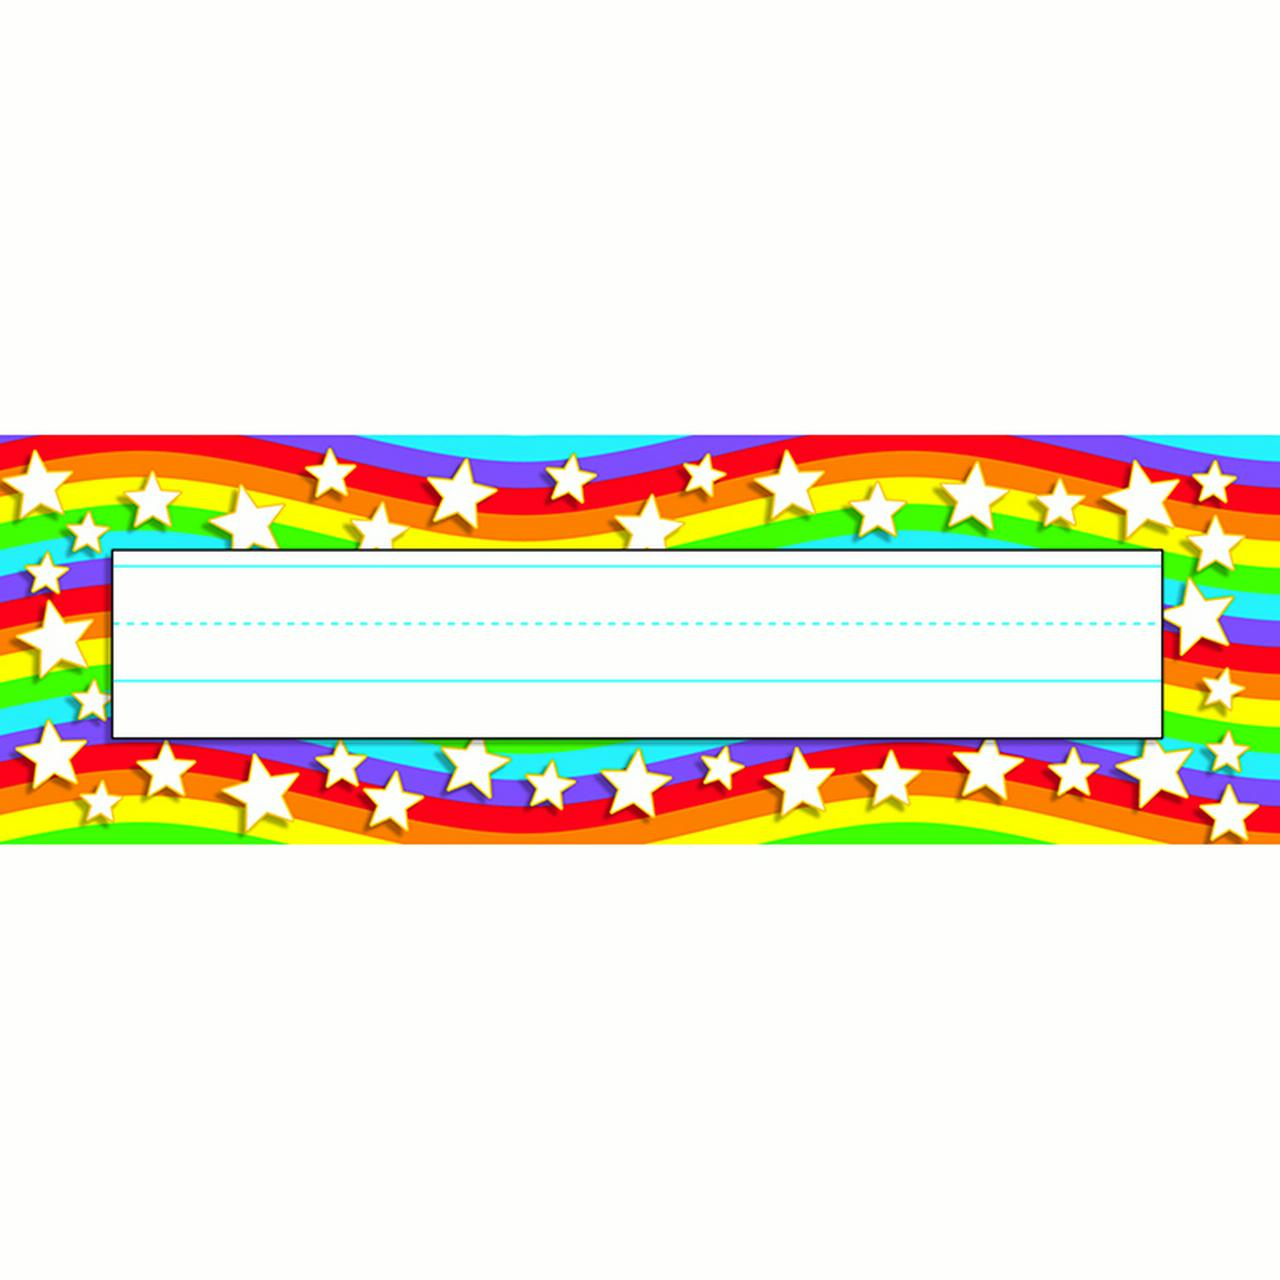 Star Rainbow Desk Toppers Name - image 1 of 1